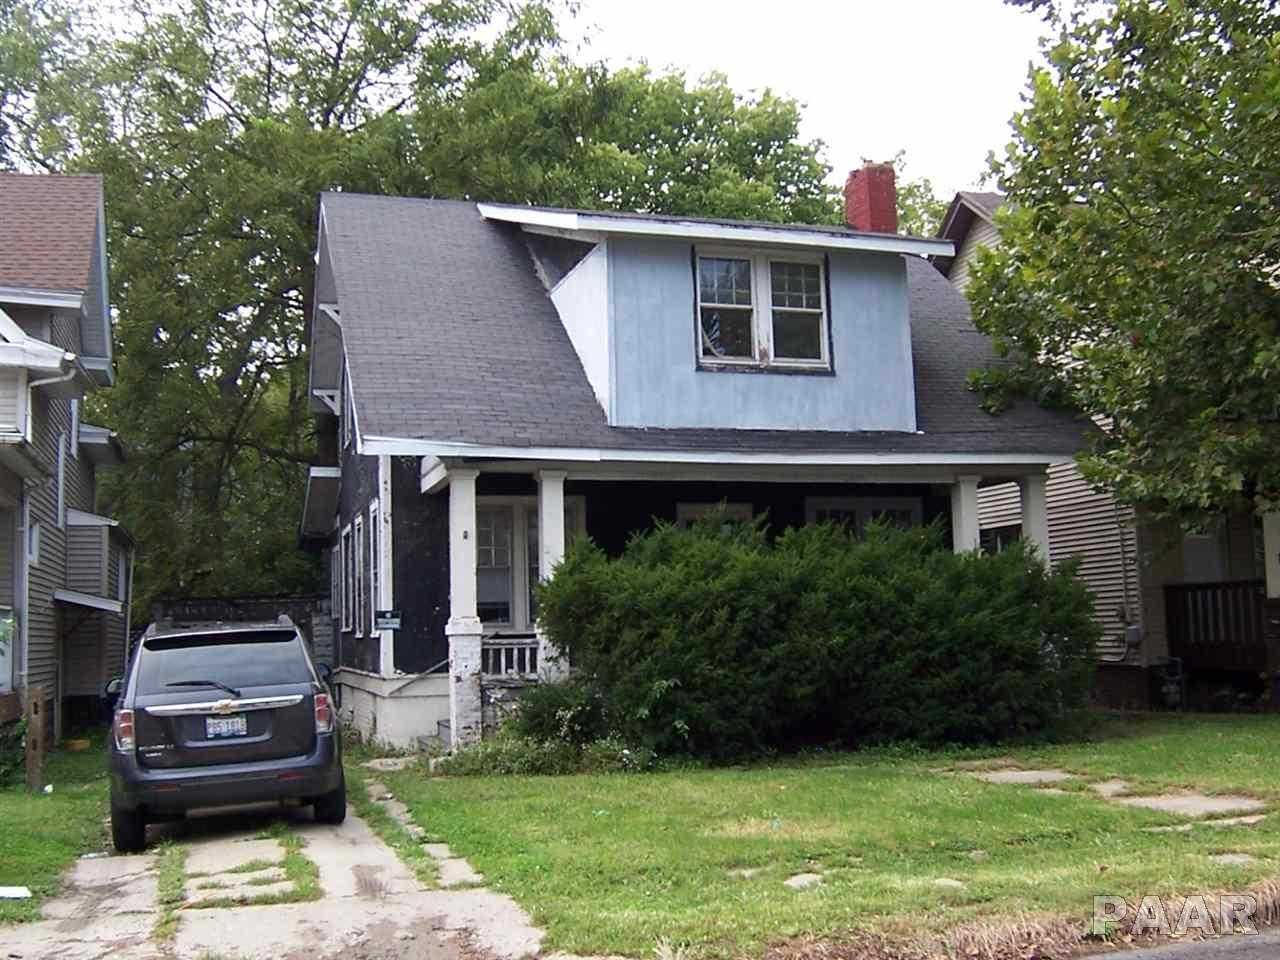 $9,000 - 3Br/1Ba -  for Sale in Commisioner, Peoria